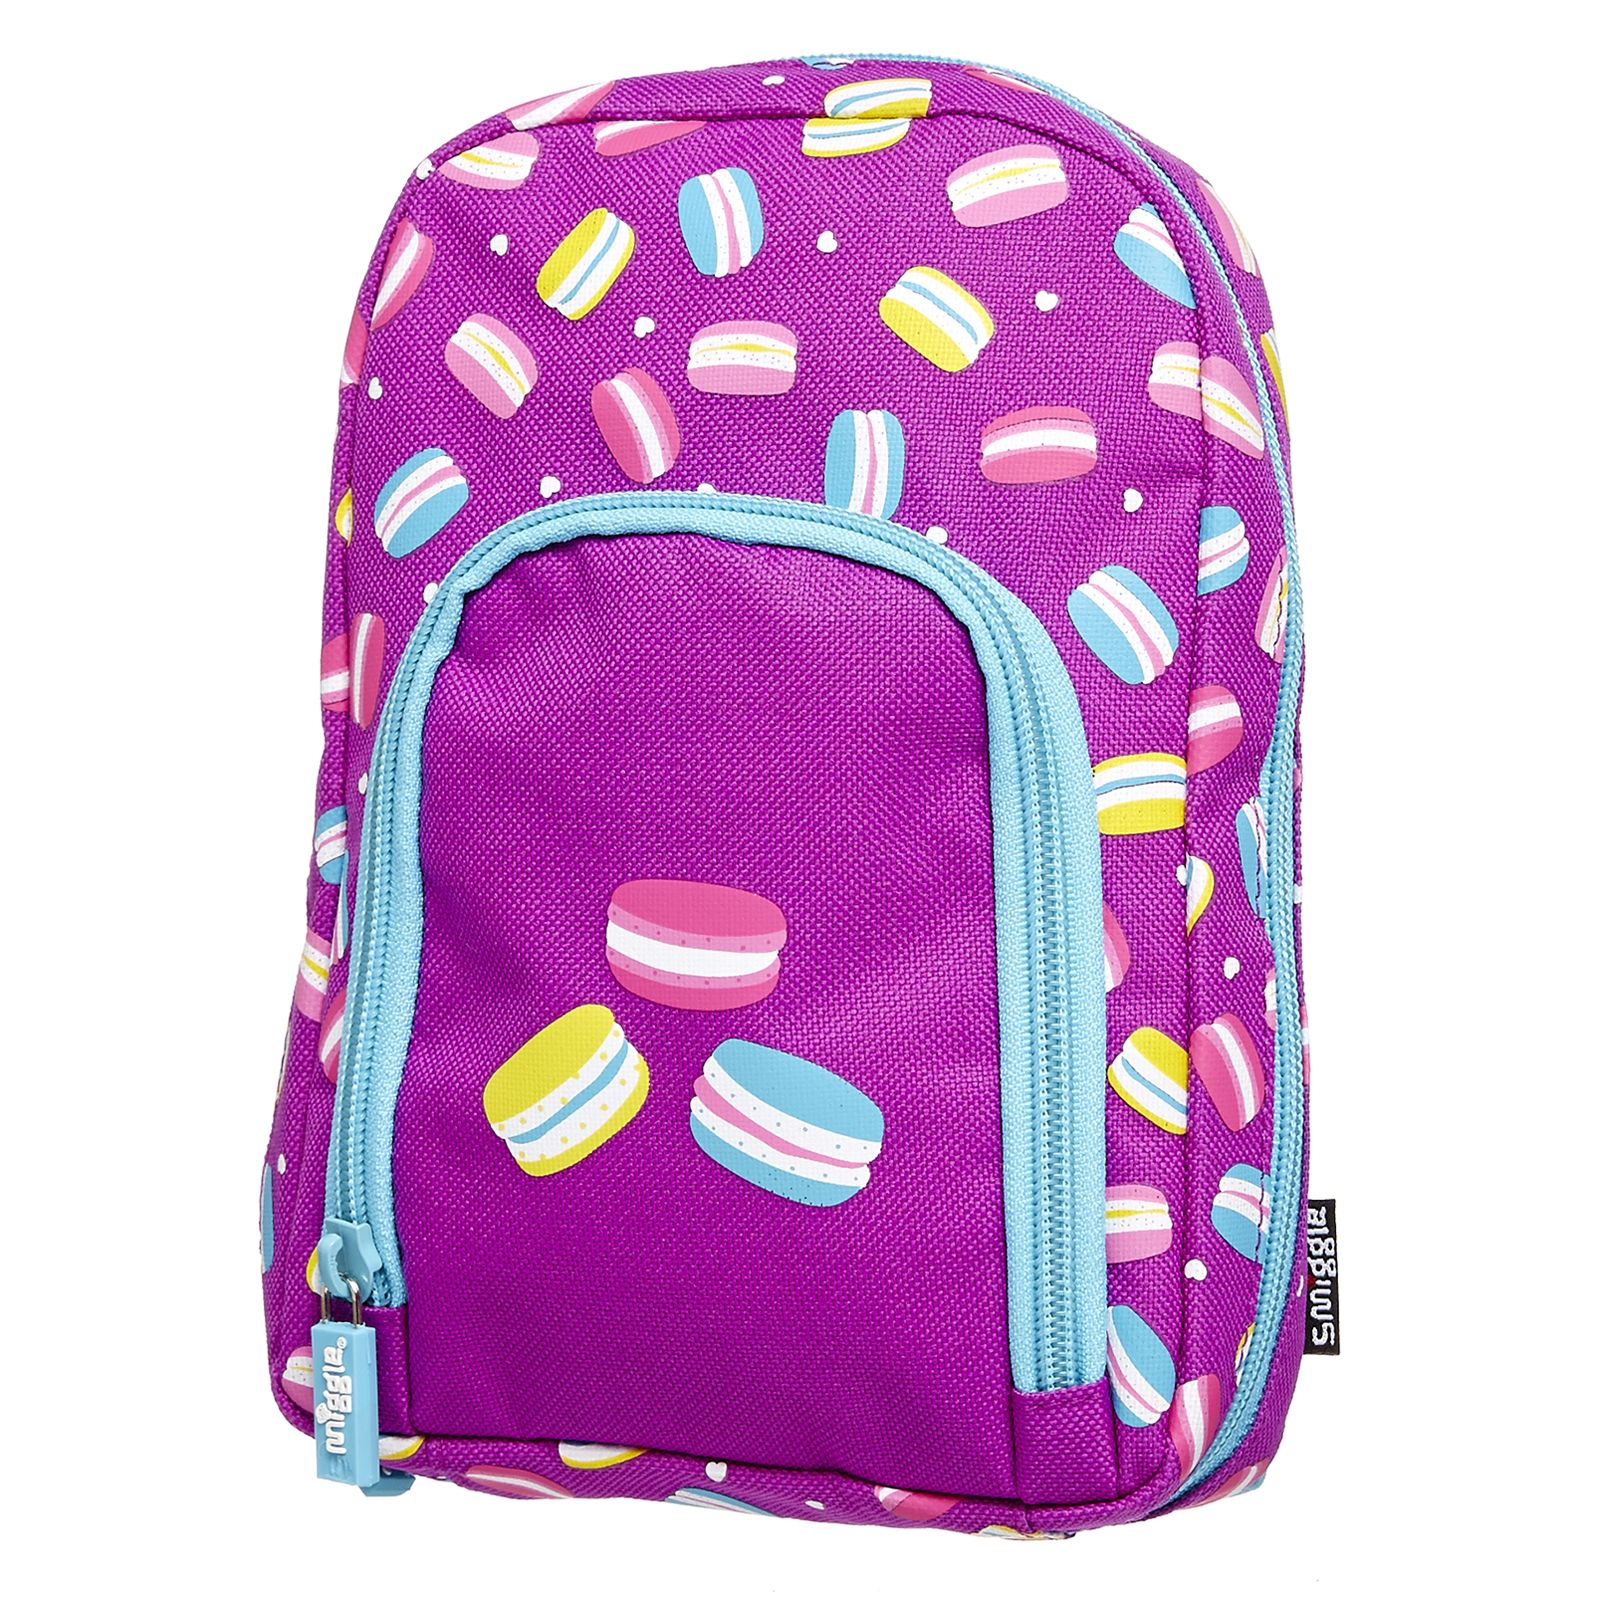 Smiggle bags for school - Image For Pencil Case Backpack Fun From Smiggle